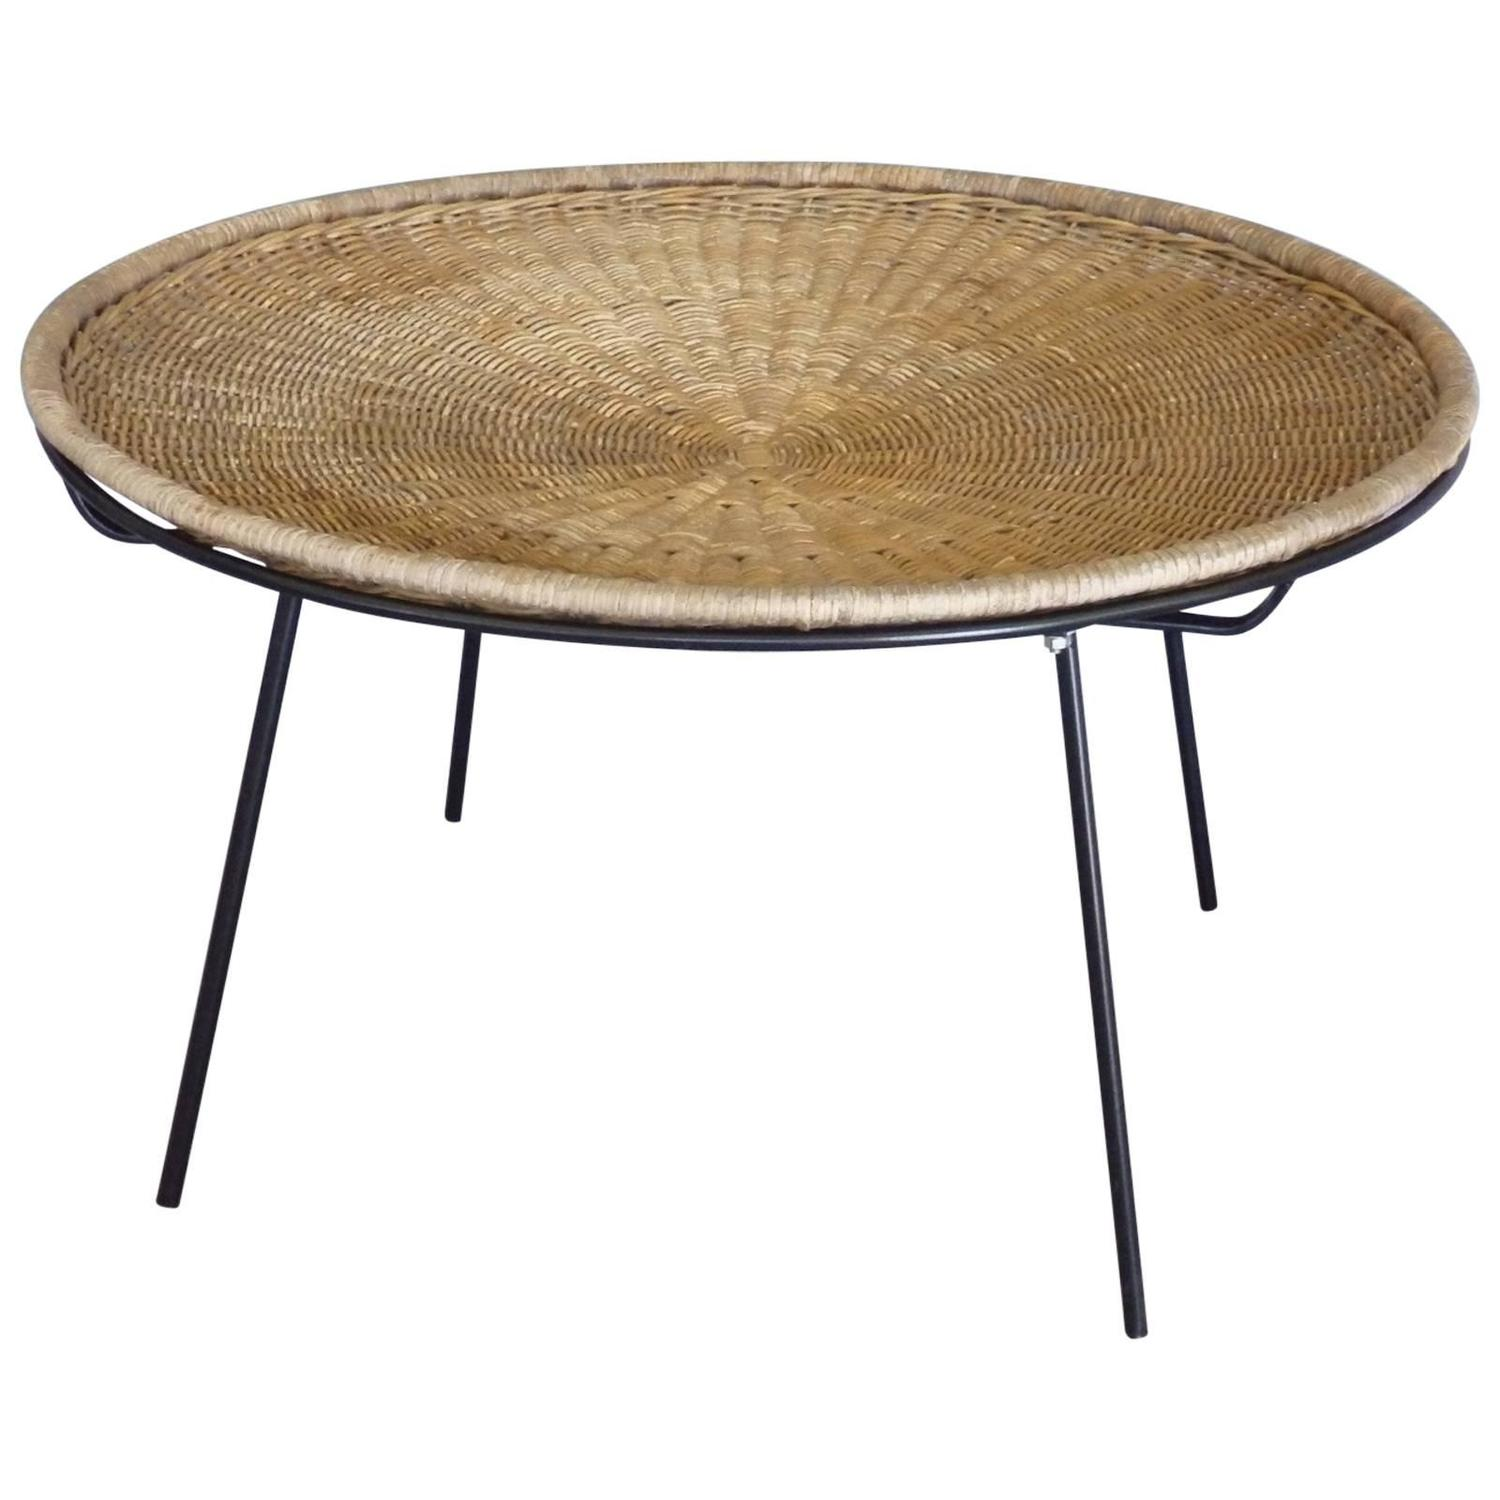 Rattan on Wrought Iron Catch All Coffee Table For Sale at 1stdibs